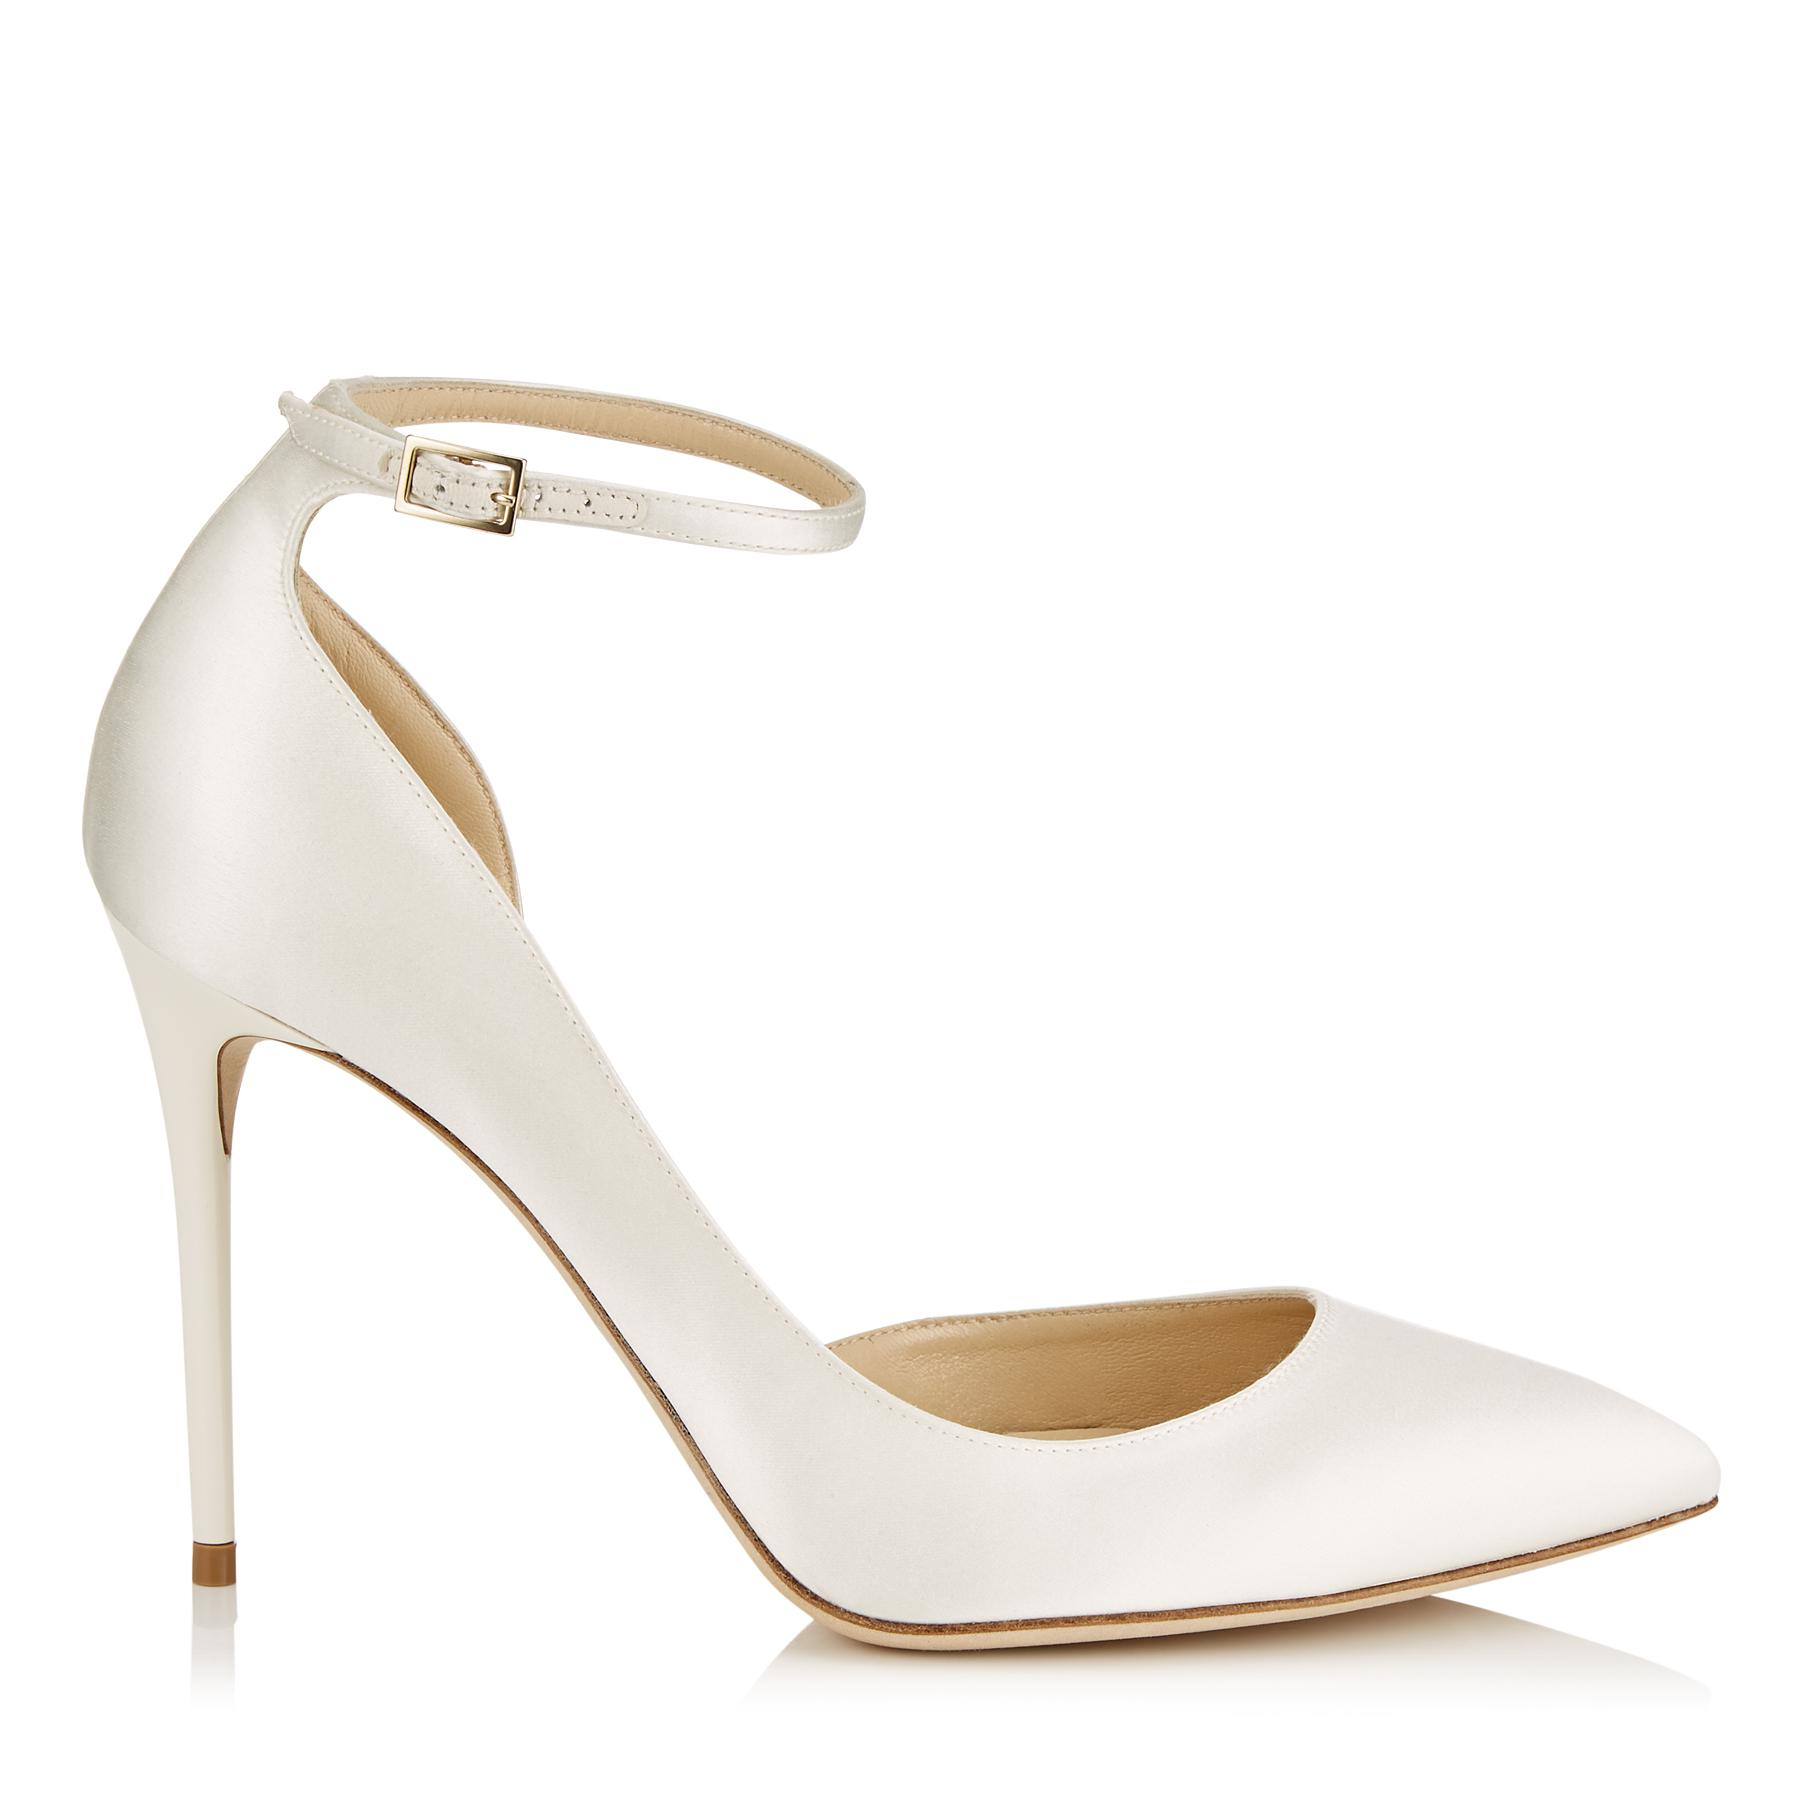 0b6147a36053 Jimmy Choo. Women s White Lucy 100 Ivory Satin Pointy Toe Court Shoes